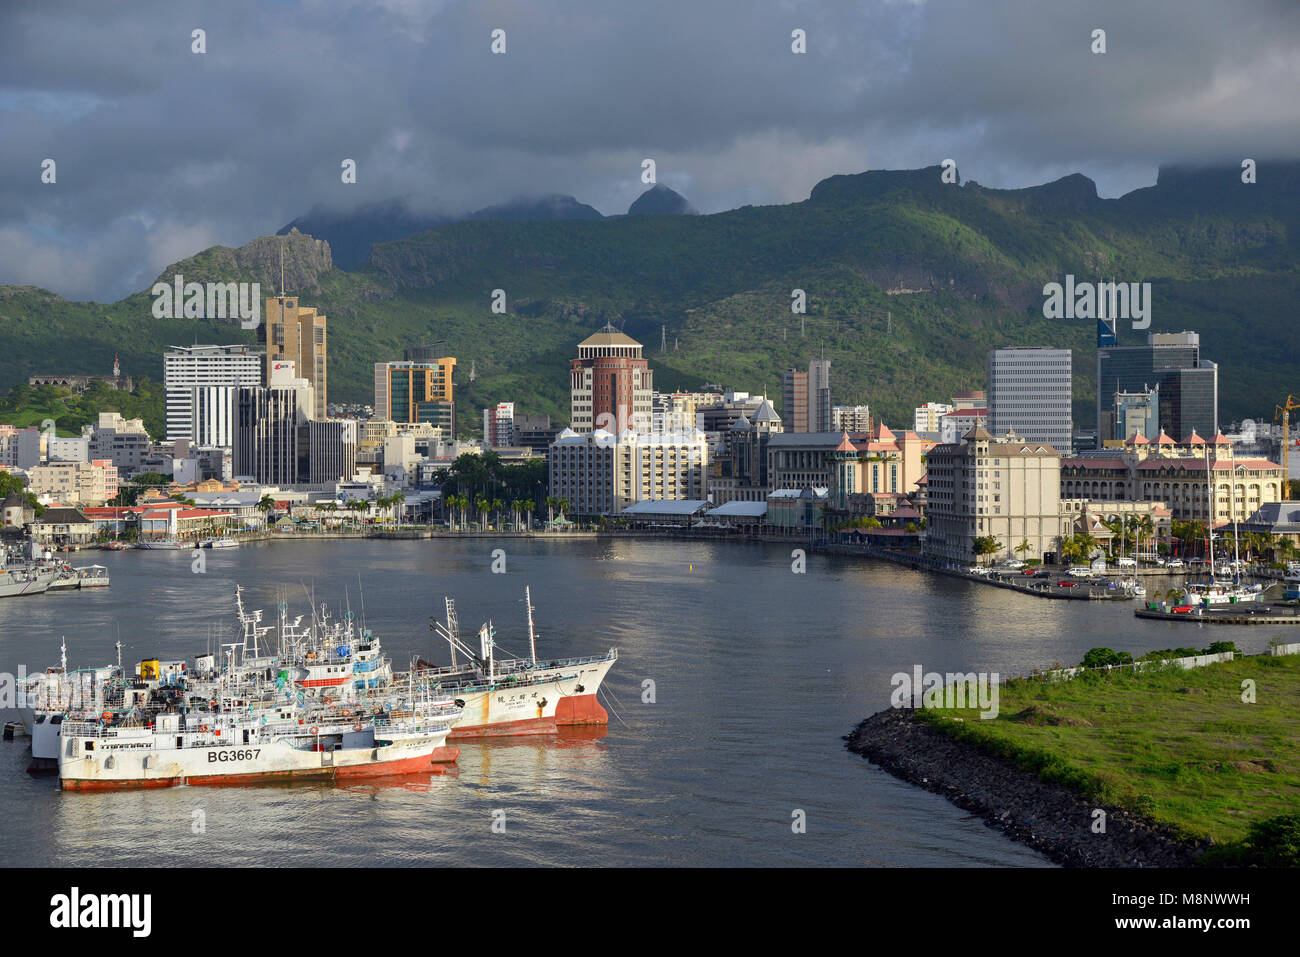 Holidays in port louis stock photos holidays in port louis stock images alamy - First restaurant port louis ...